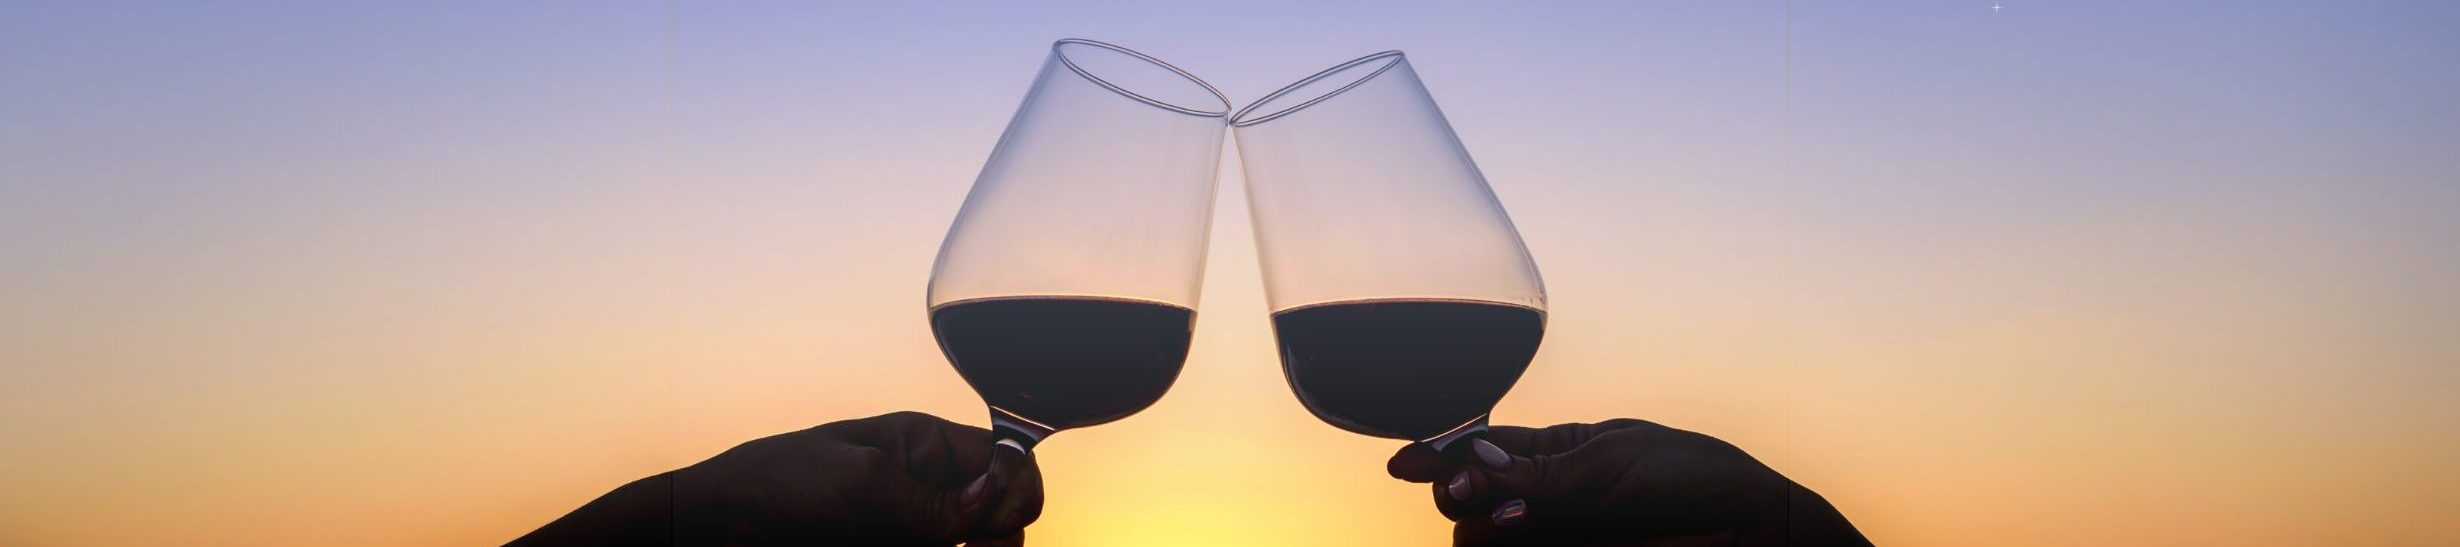 Image of two wine glasses cheersing over sunset